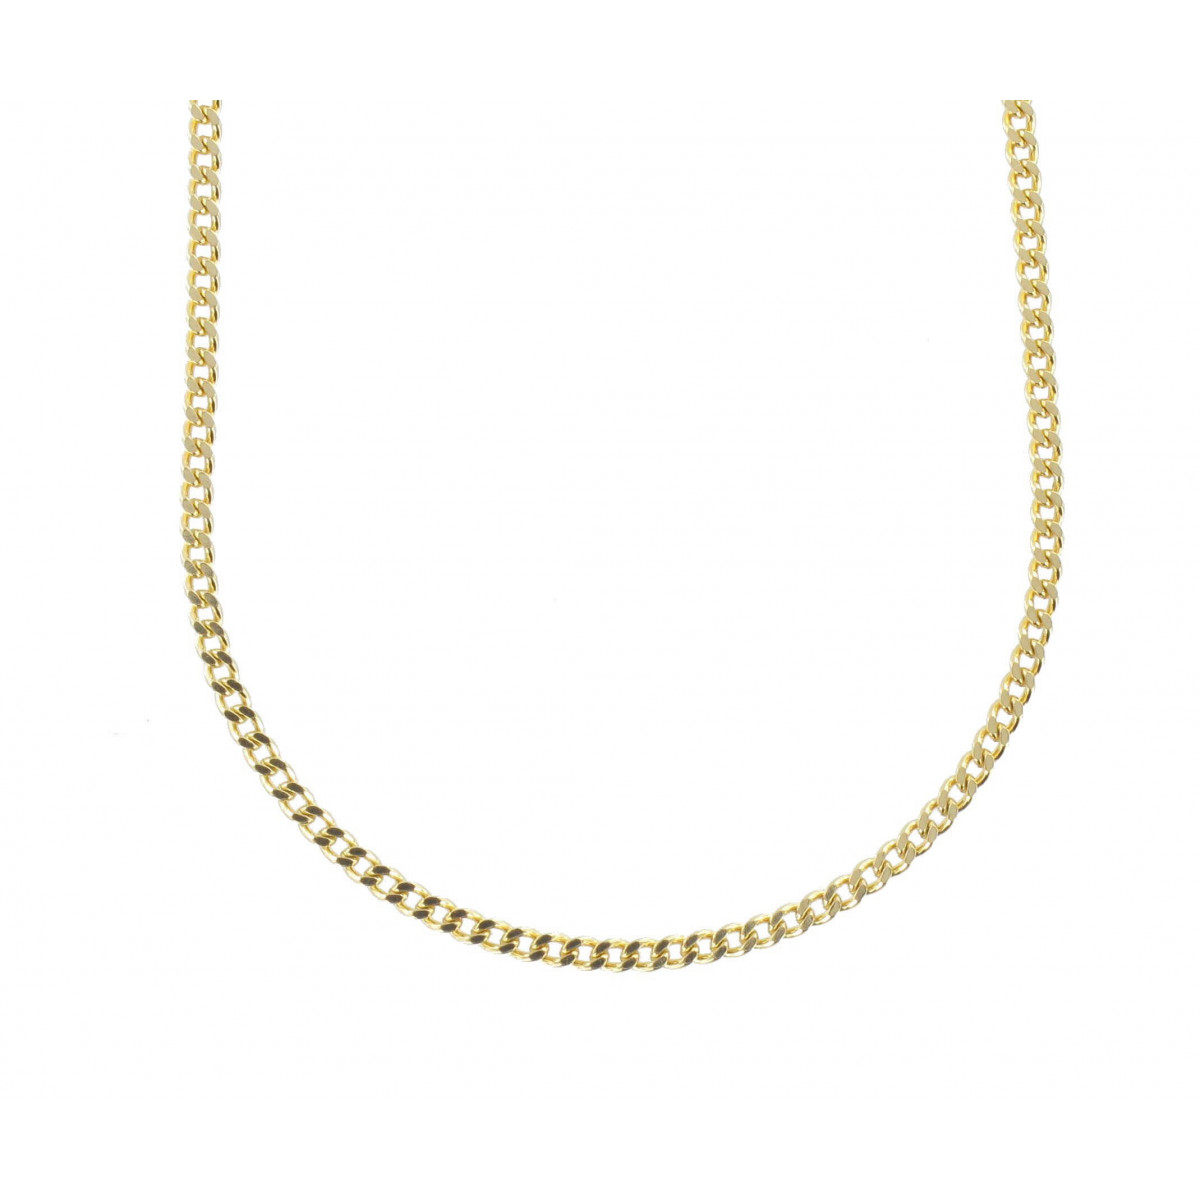 GOLD 60 CENTIMETERS CHAIN